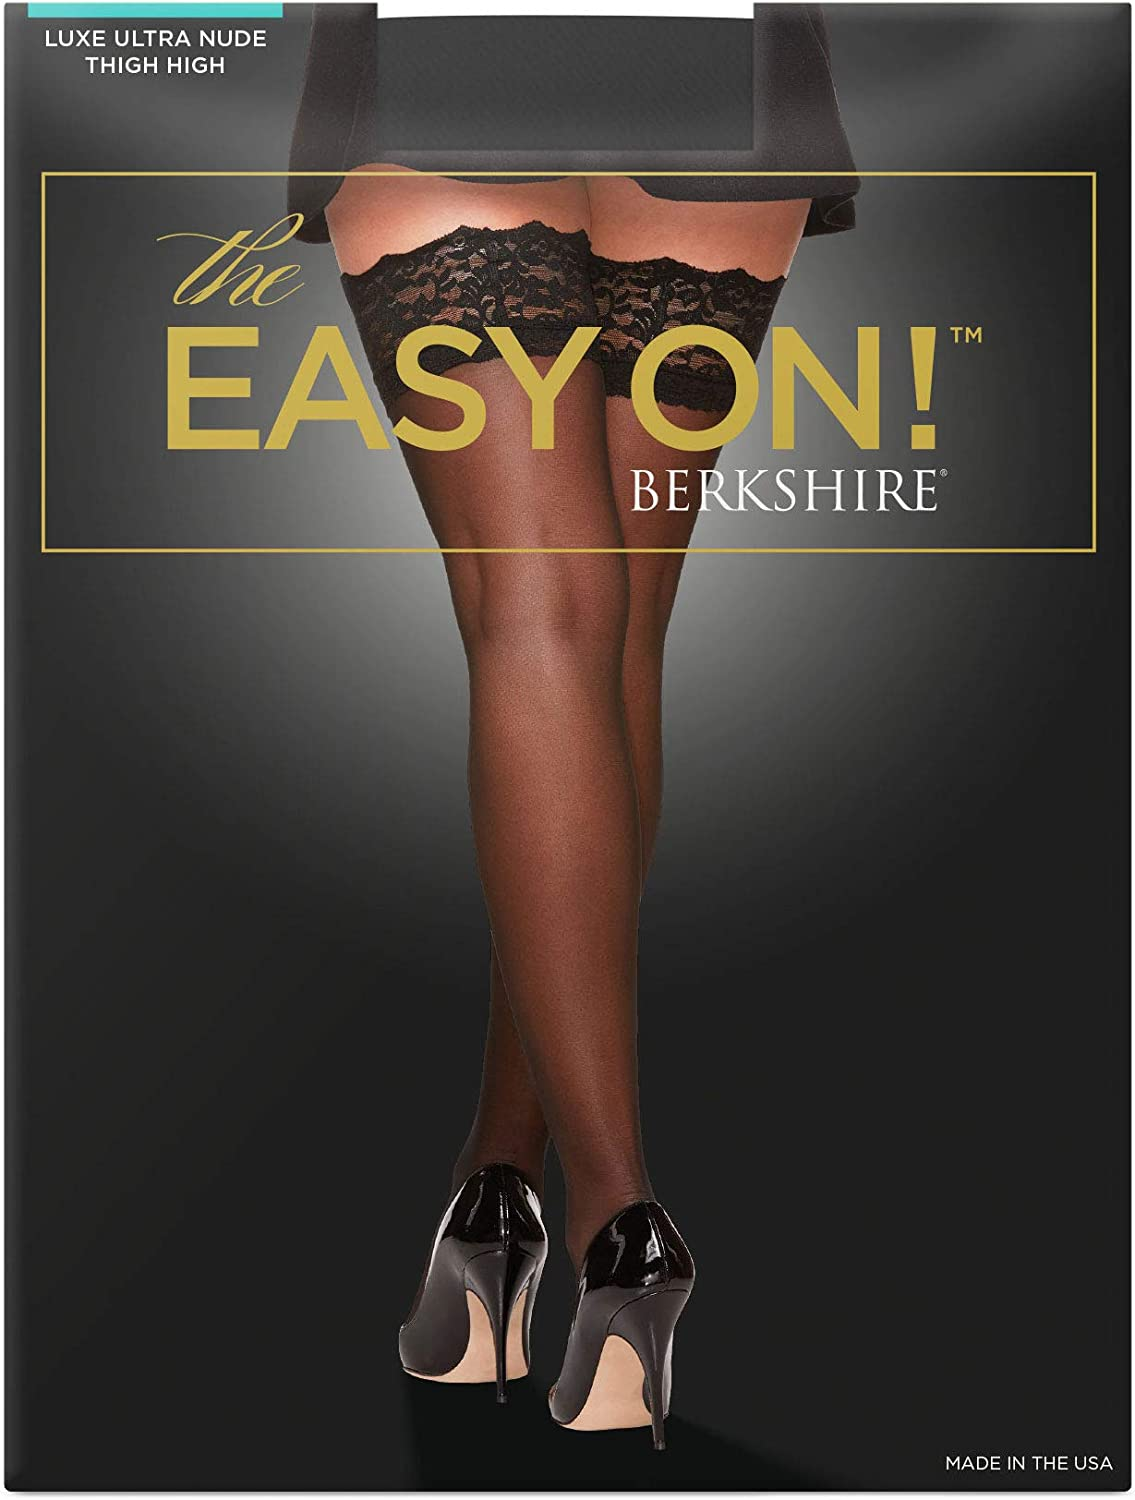 Berkshire Women's The Easy On! Luxe Sheers Lace Top Thigh High Pantyhose